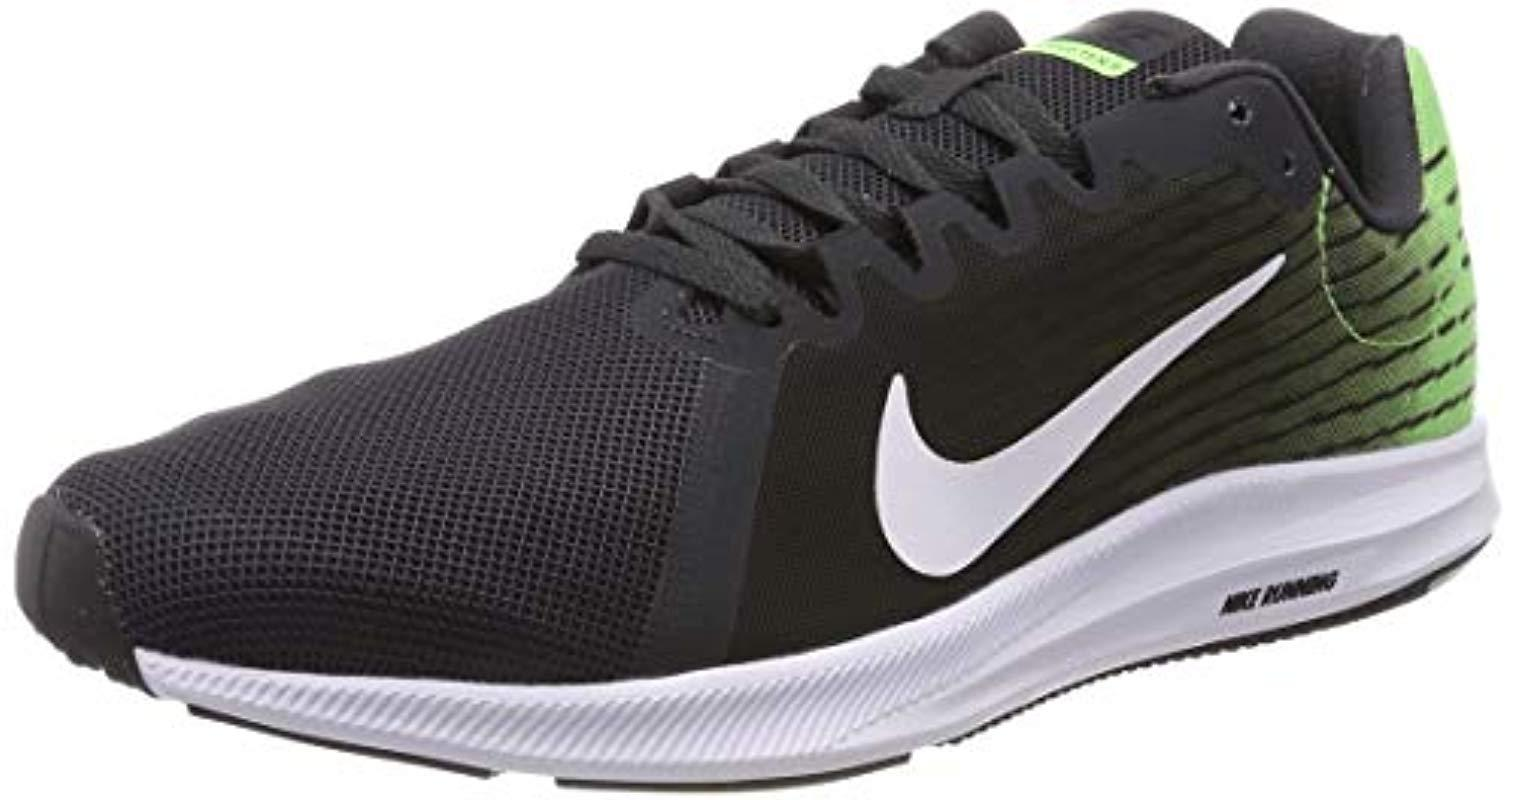 best sneakers 78972 f3bd4 Nike Downshifter 8 Running Shoes, Multicolour (anthracite white lime ...